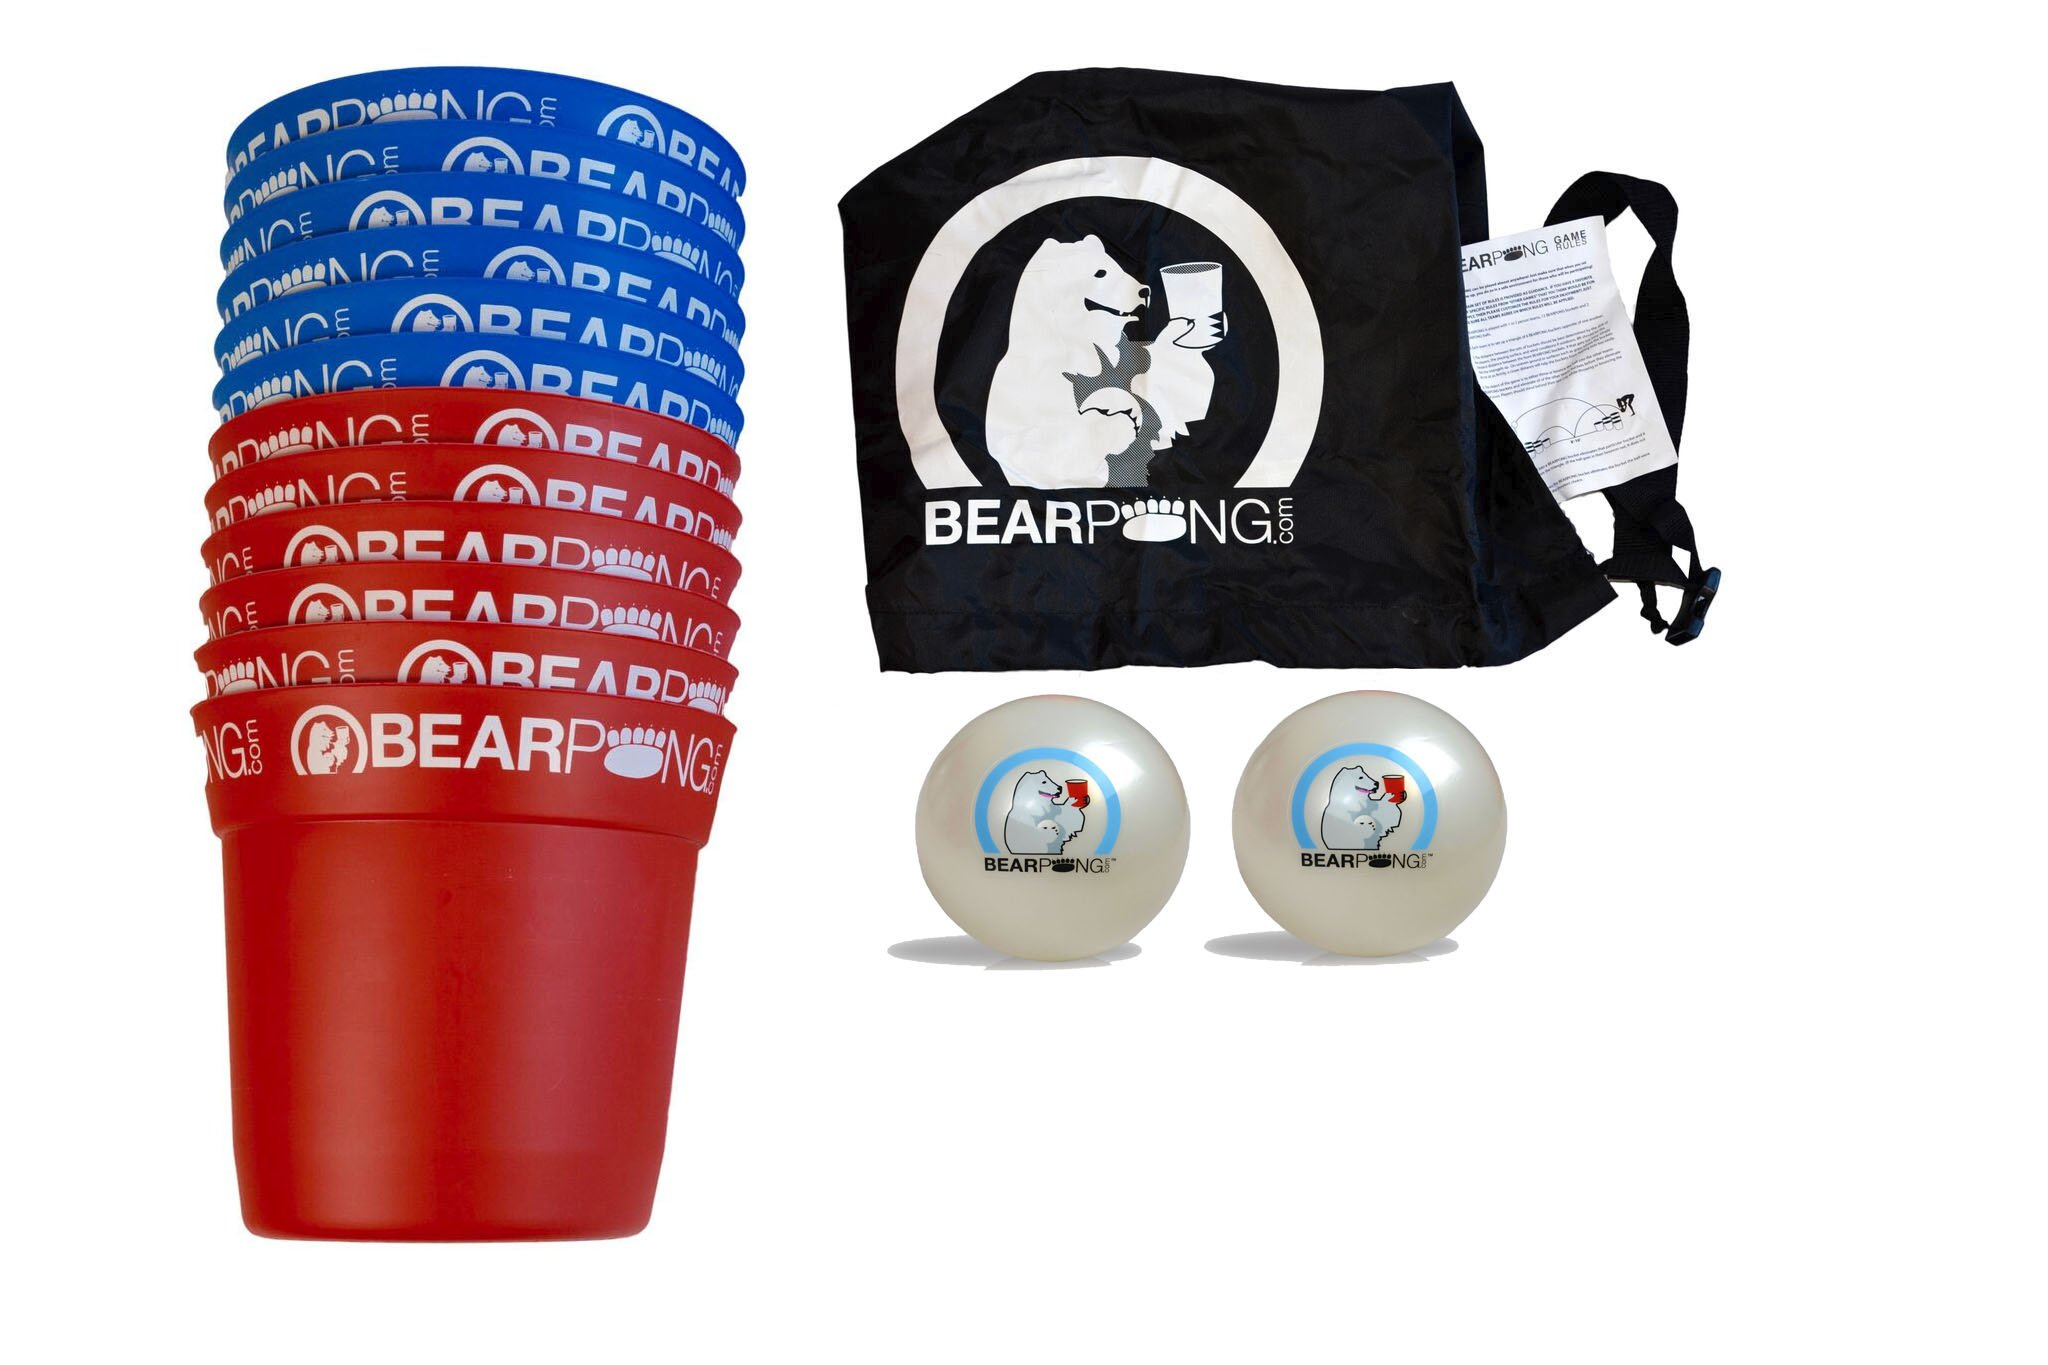 Bearpong Blue and Red Bearpong Game Set: 6 BEARPONG Red and 6 BEARPONG Blue Buckets, 3 BEARPONG Balls, 2 Beach Balls, 1 Ball Pump with Carrying Case, and instructions